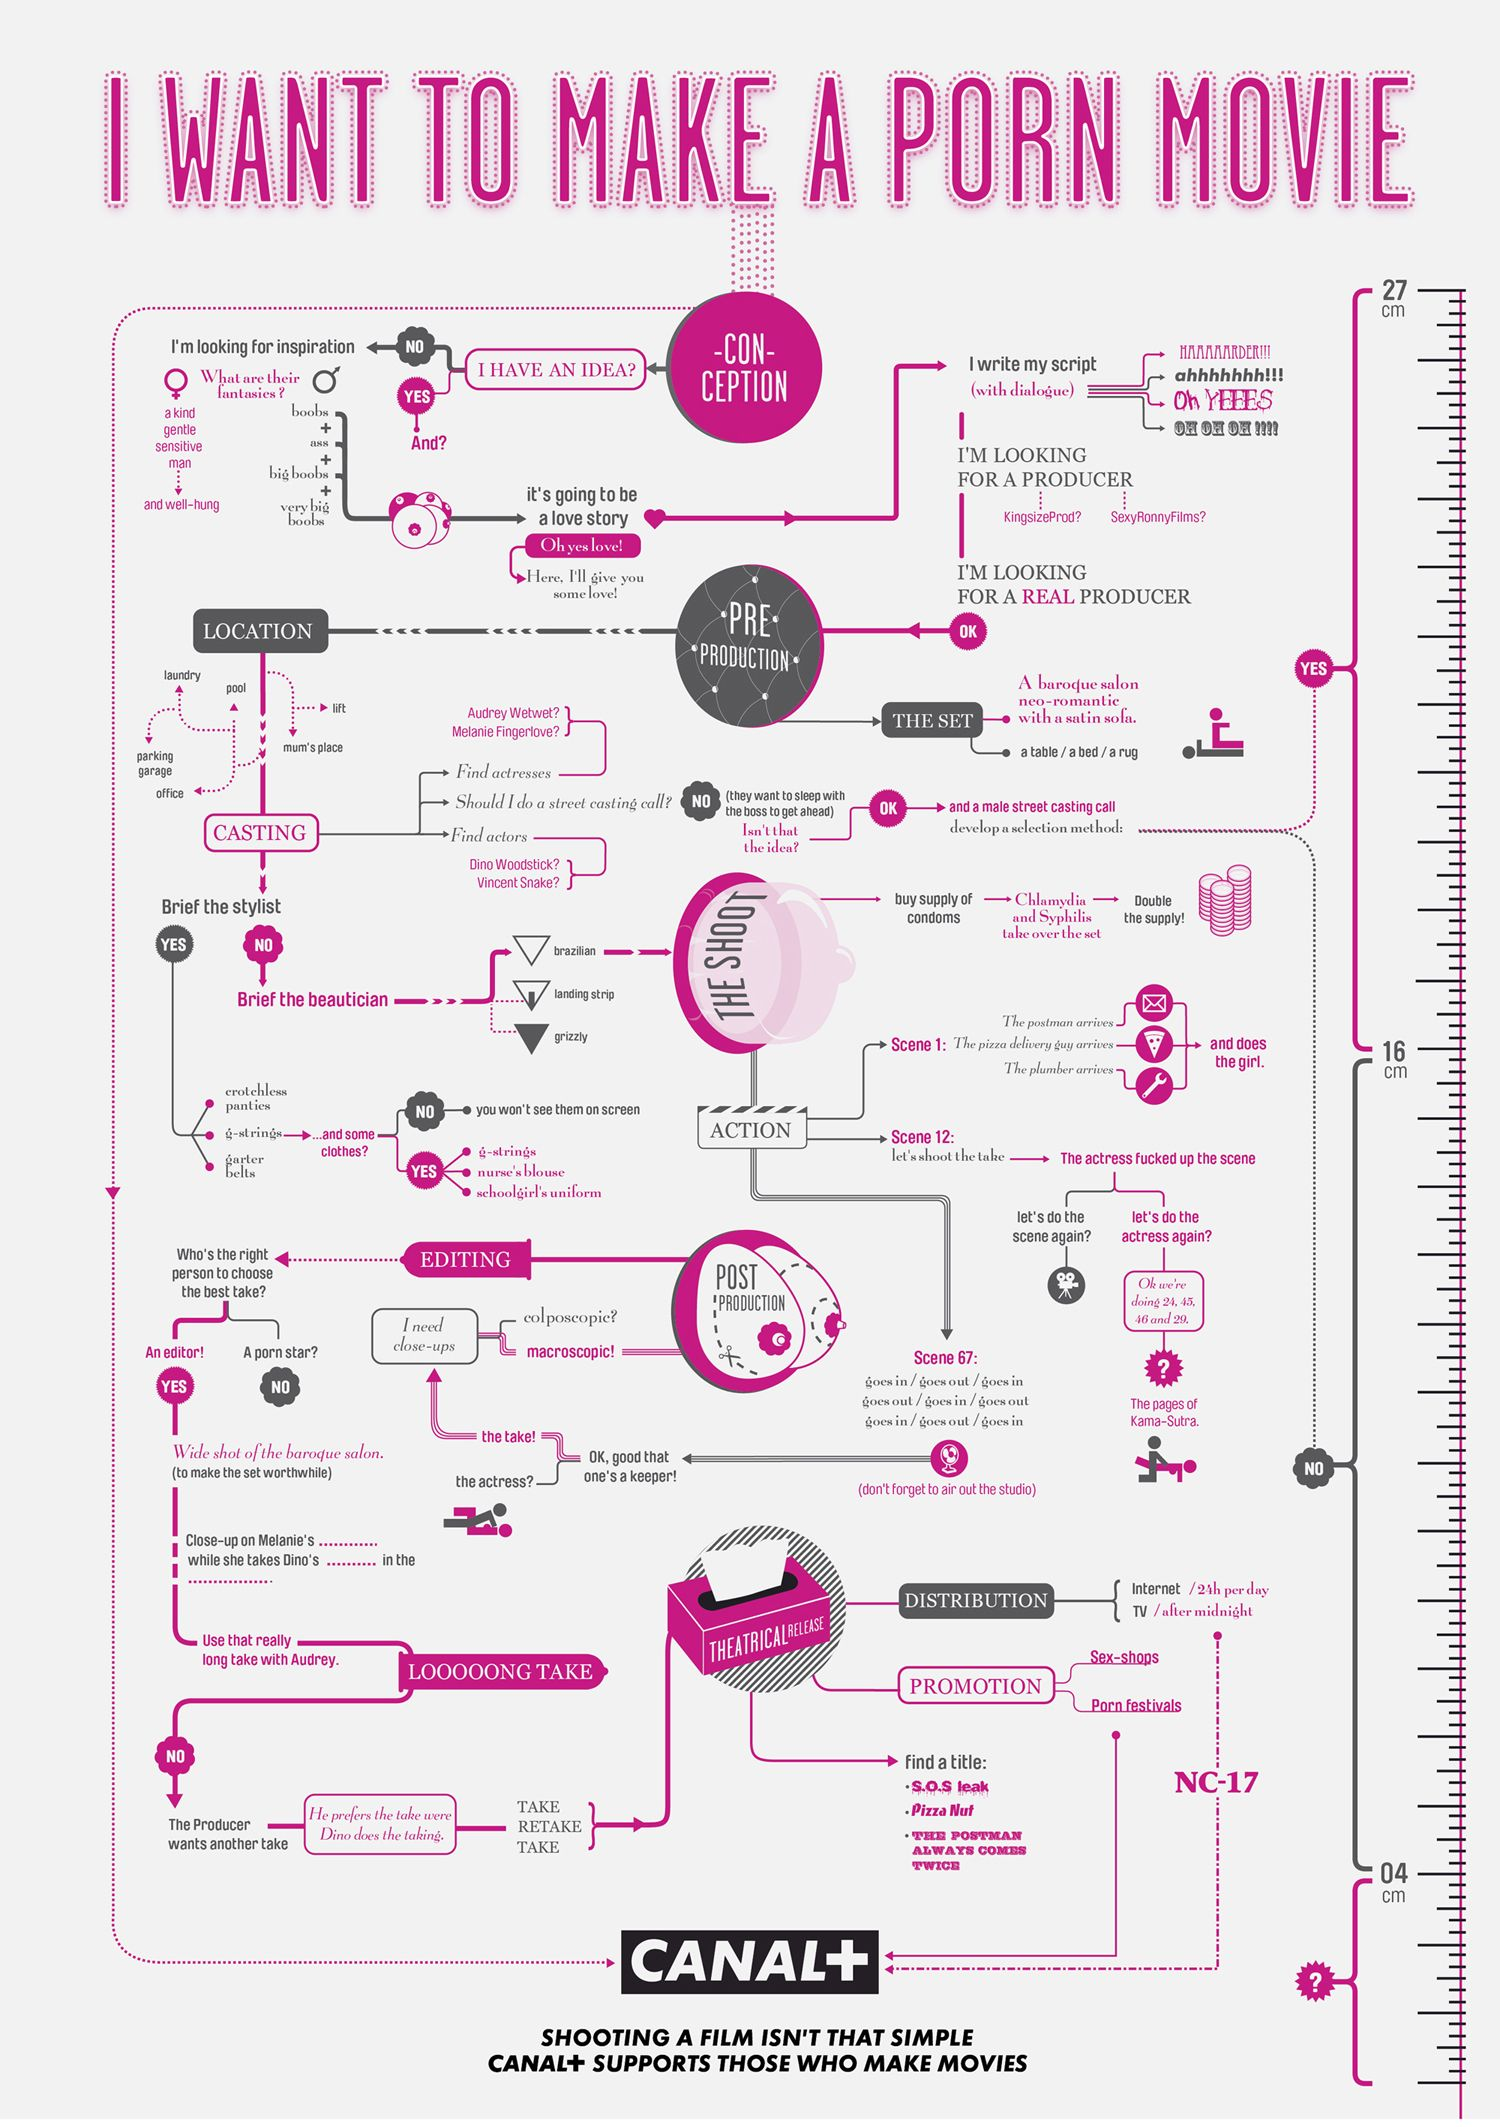 How to make a short film flow chart making a film is easy follow how to make a short film flow chart making a film is easy follow the flow chart from conception of idea to your movies release and then your repa geenschuldenfo Images